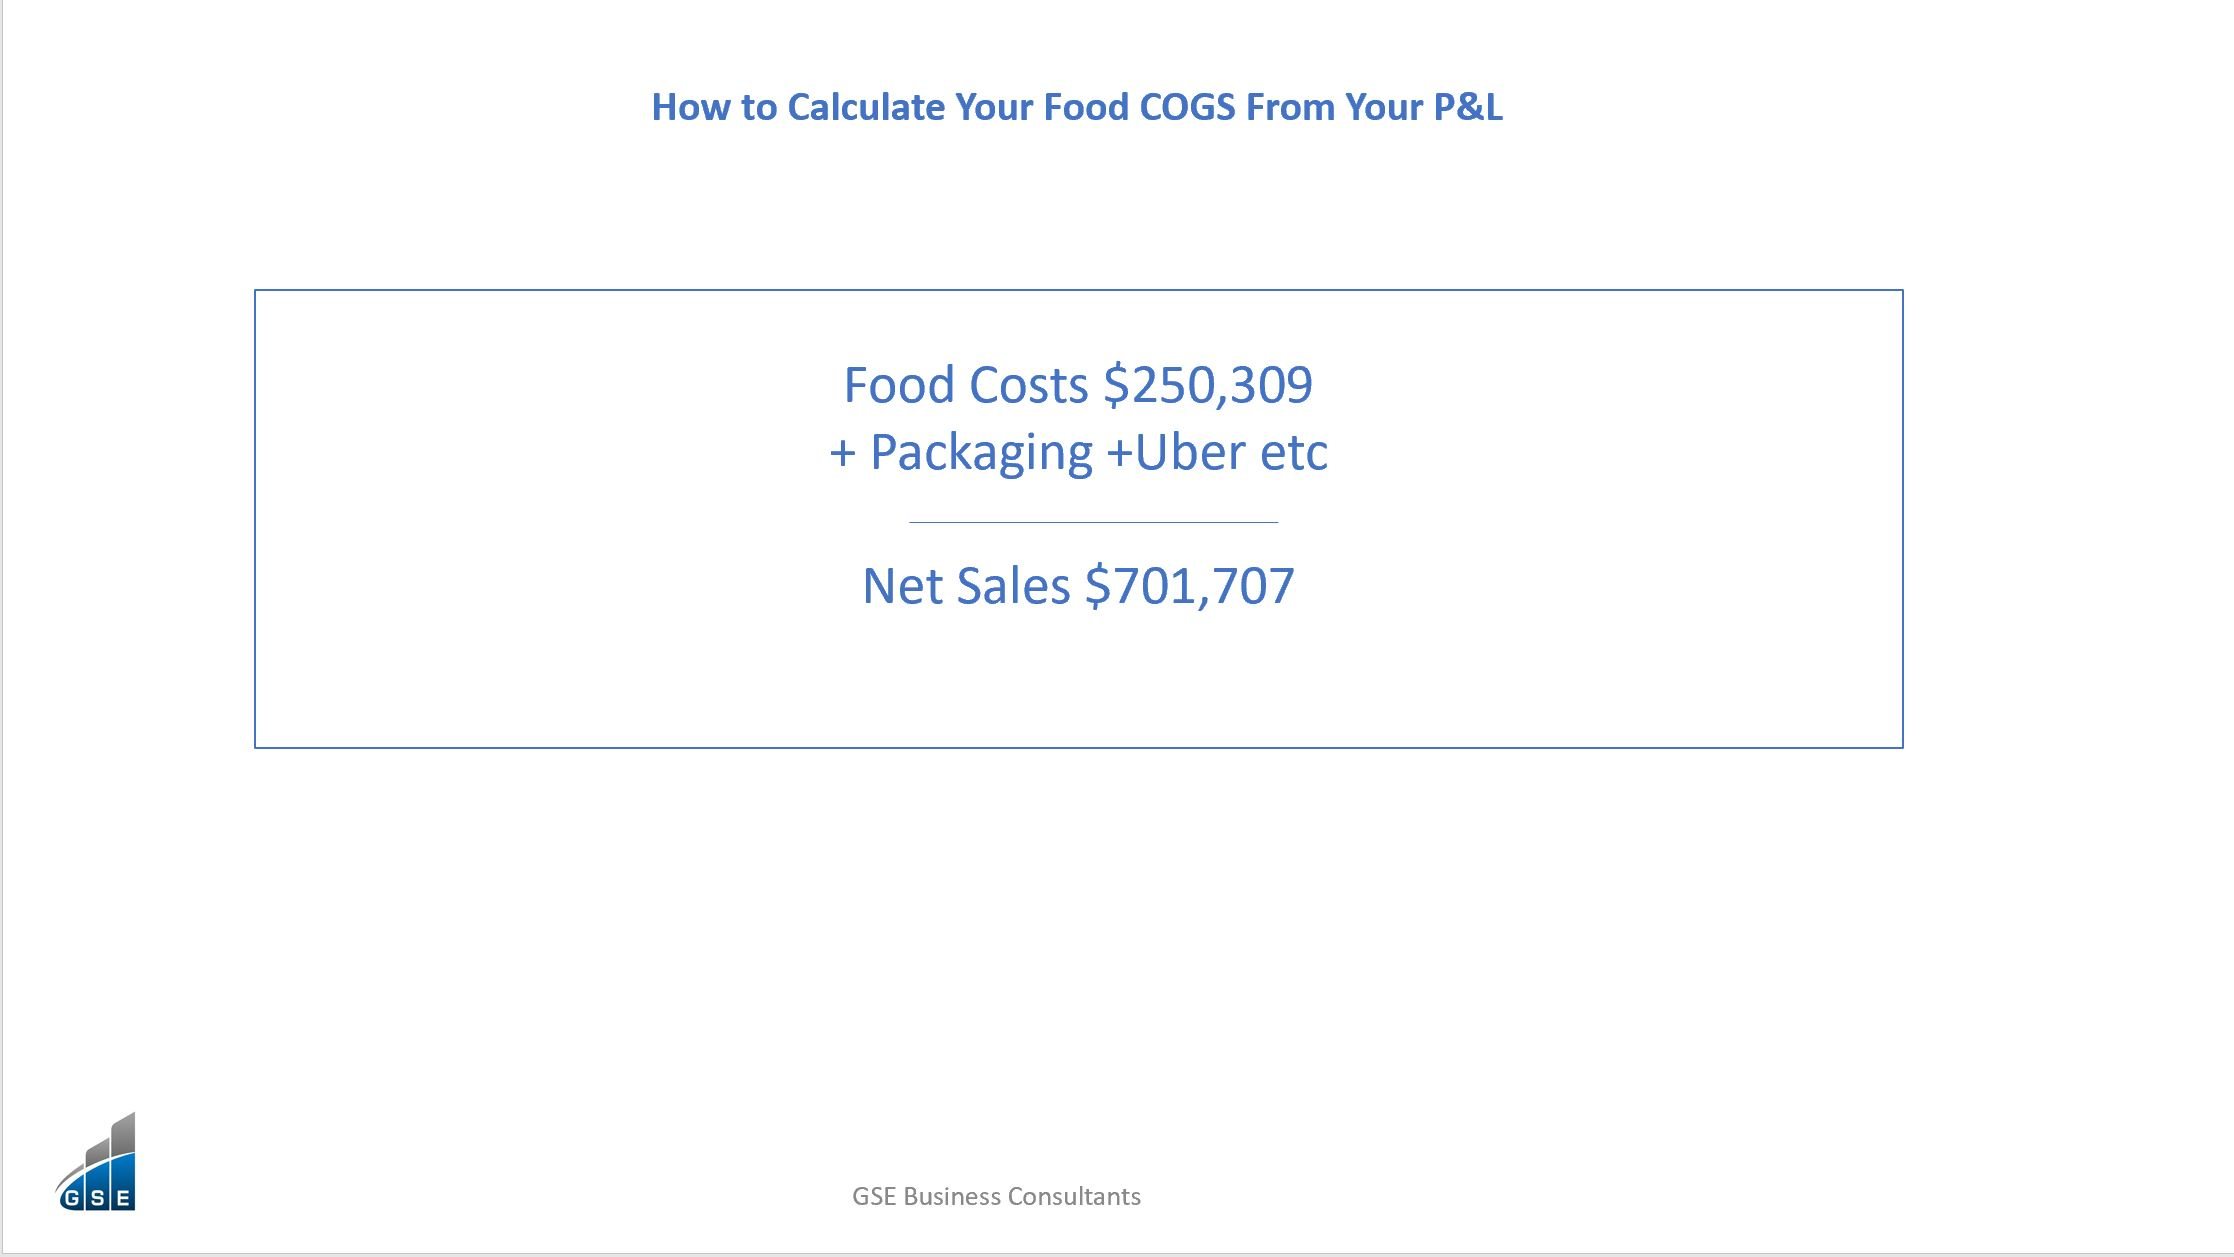 Calculate your food cost percentage